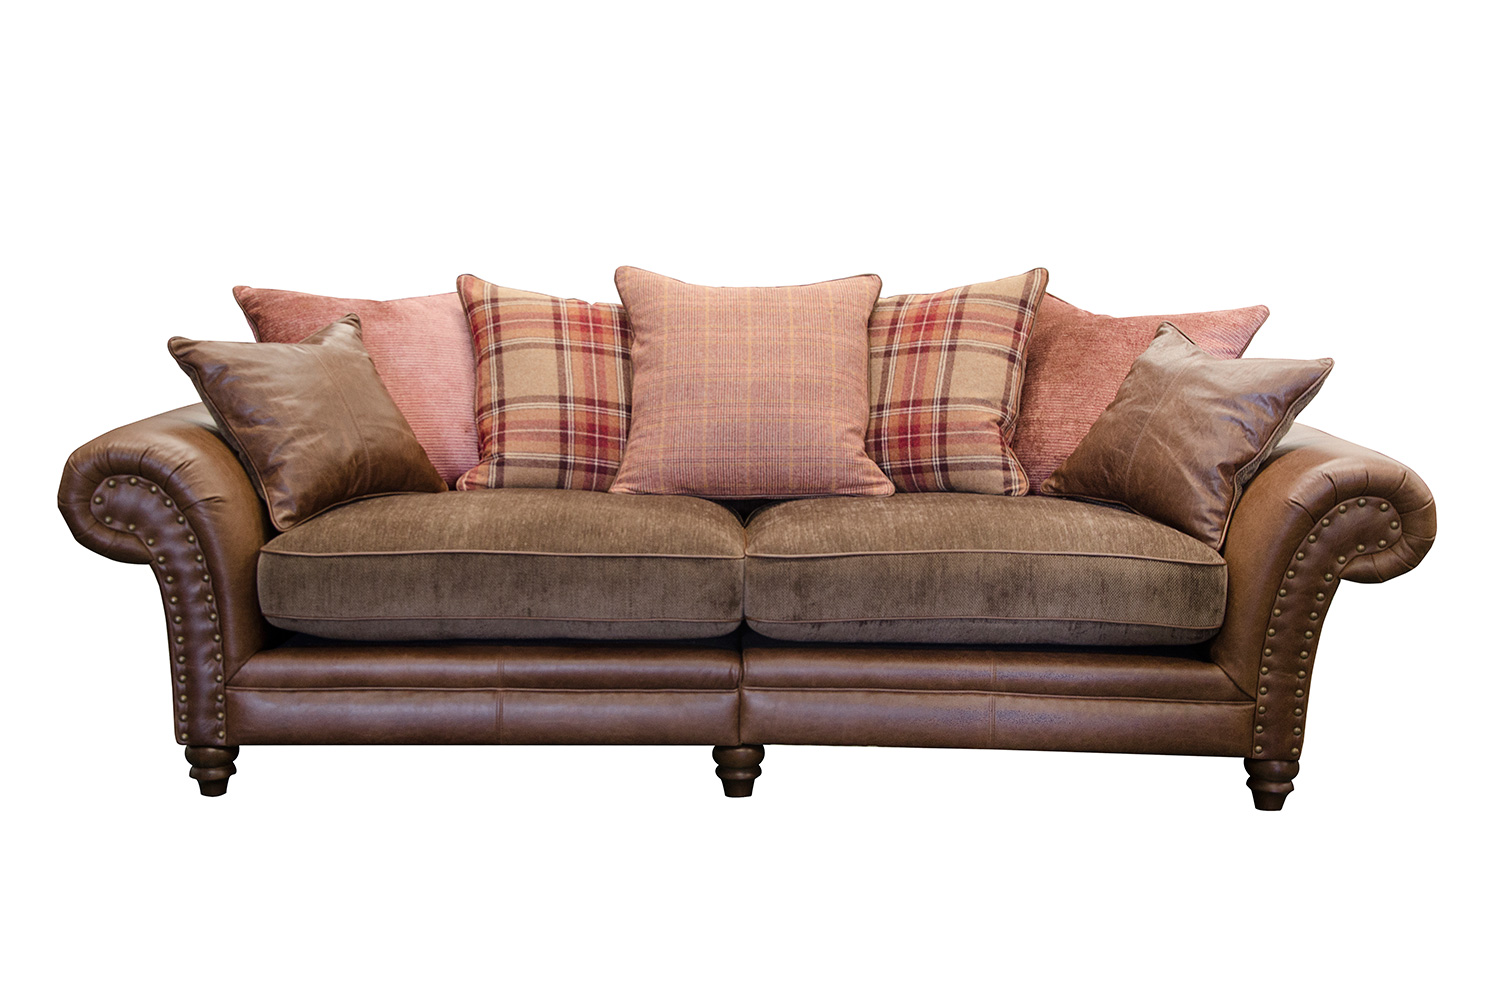 Hudson 4 Seater Sofa Alexander And James